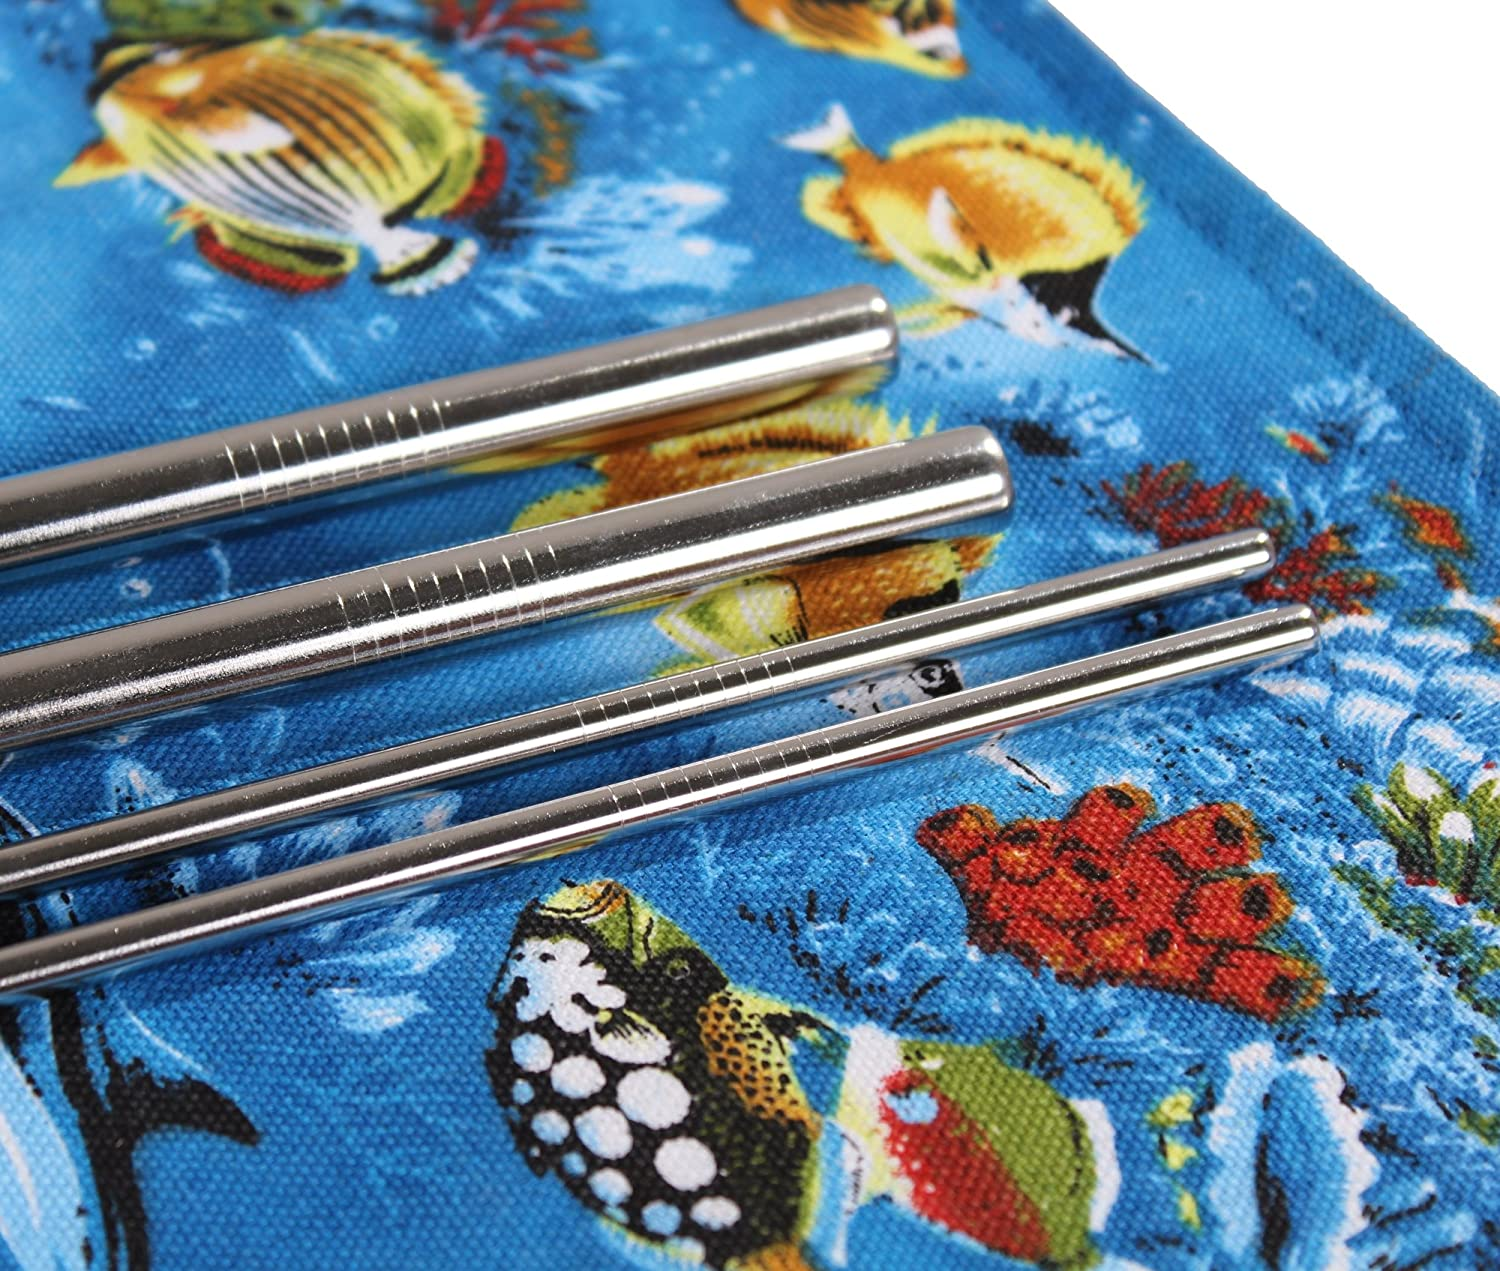 Zero Waste 2 Cleaning Brushes Blue Ocean 2 Cotton Pads Reusable Eco Friendly Stainless Steel Metal Drinking Straws Set of 4 Handmade Wrap Travel Case Yetis /& Ozark Tumblers